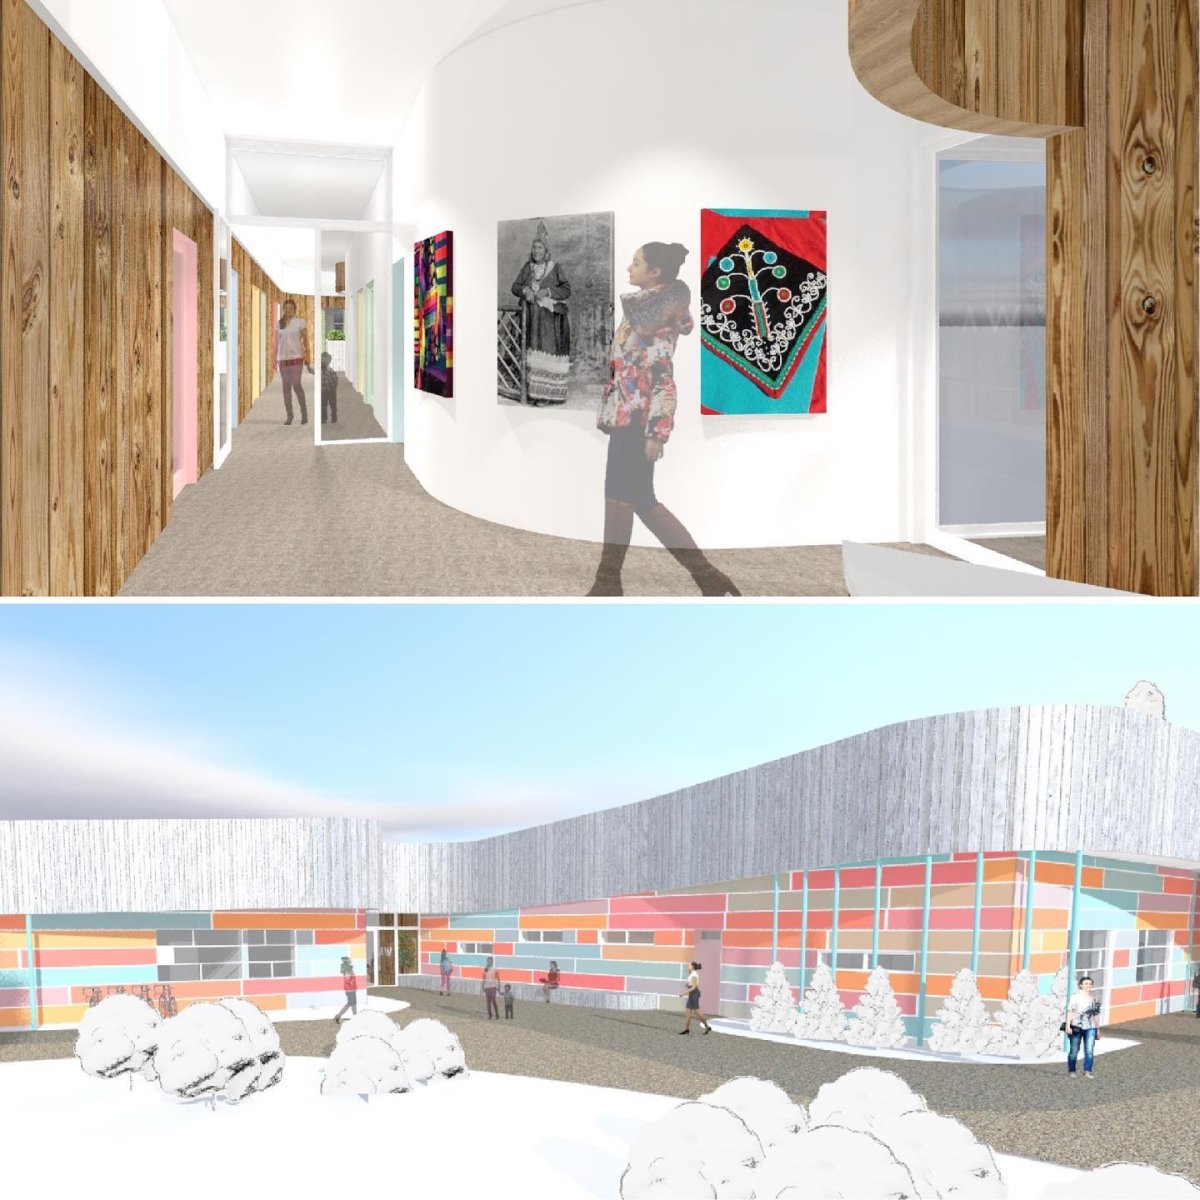 Image of how the new centre will look like.